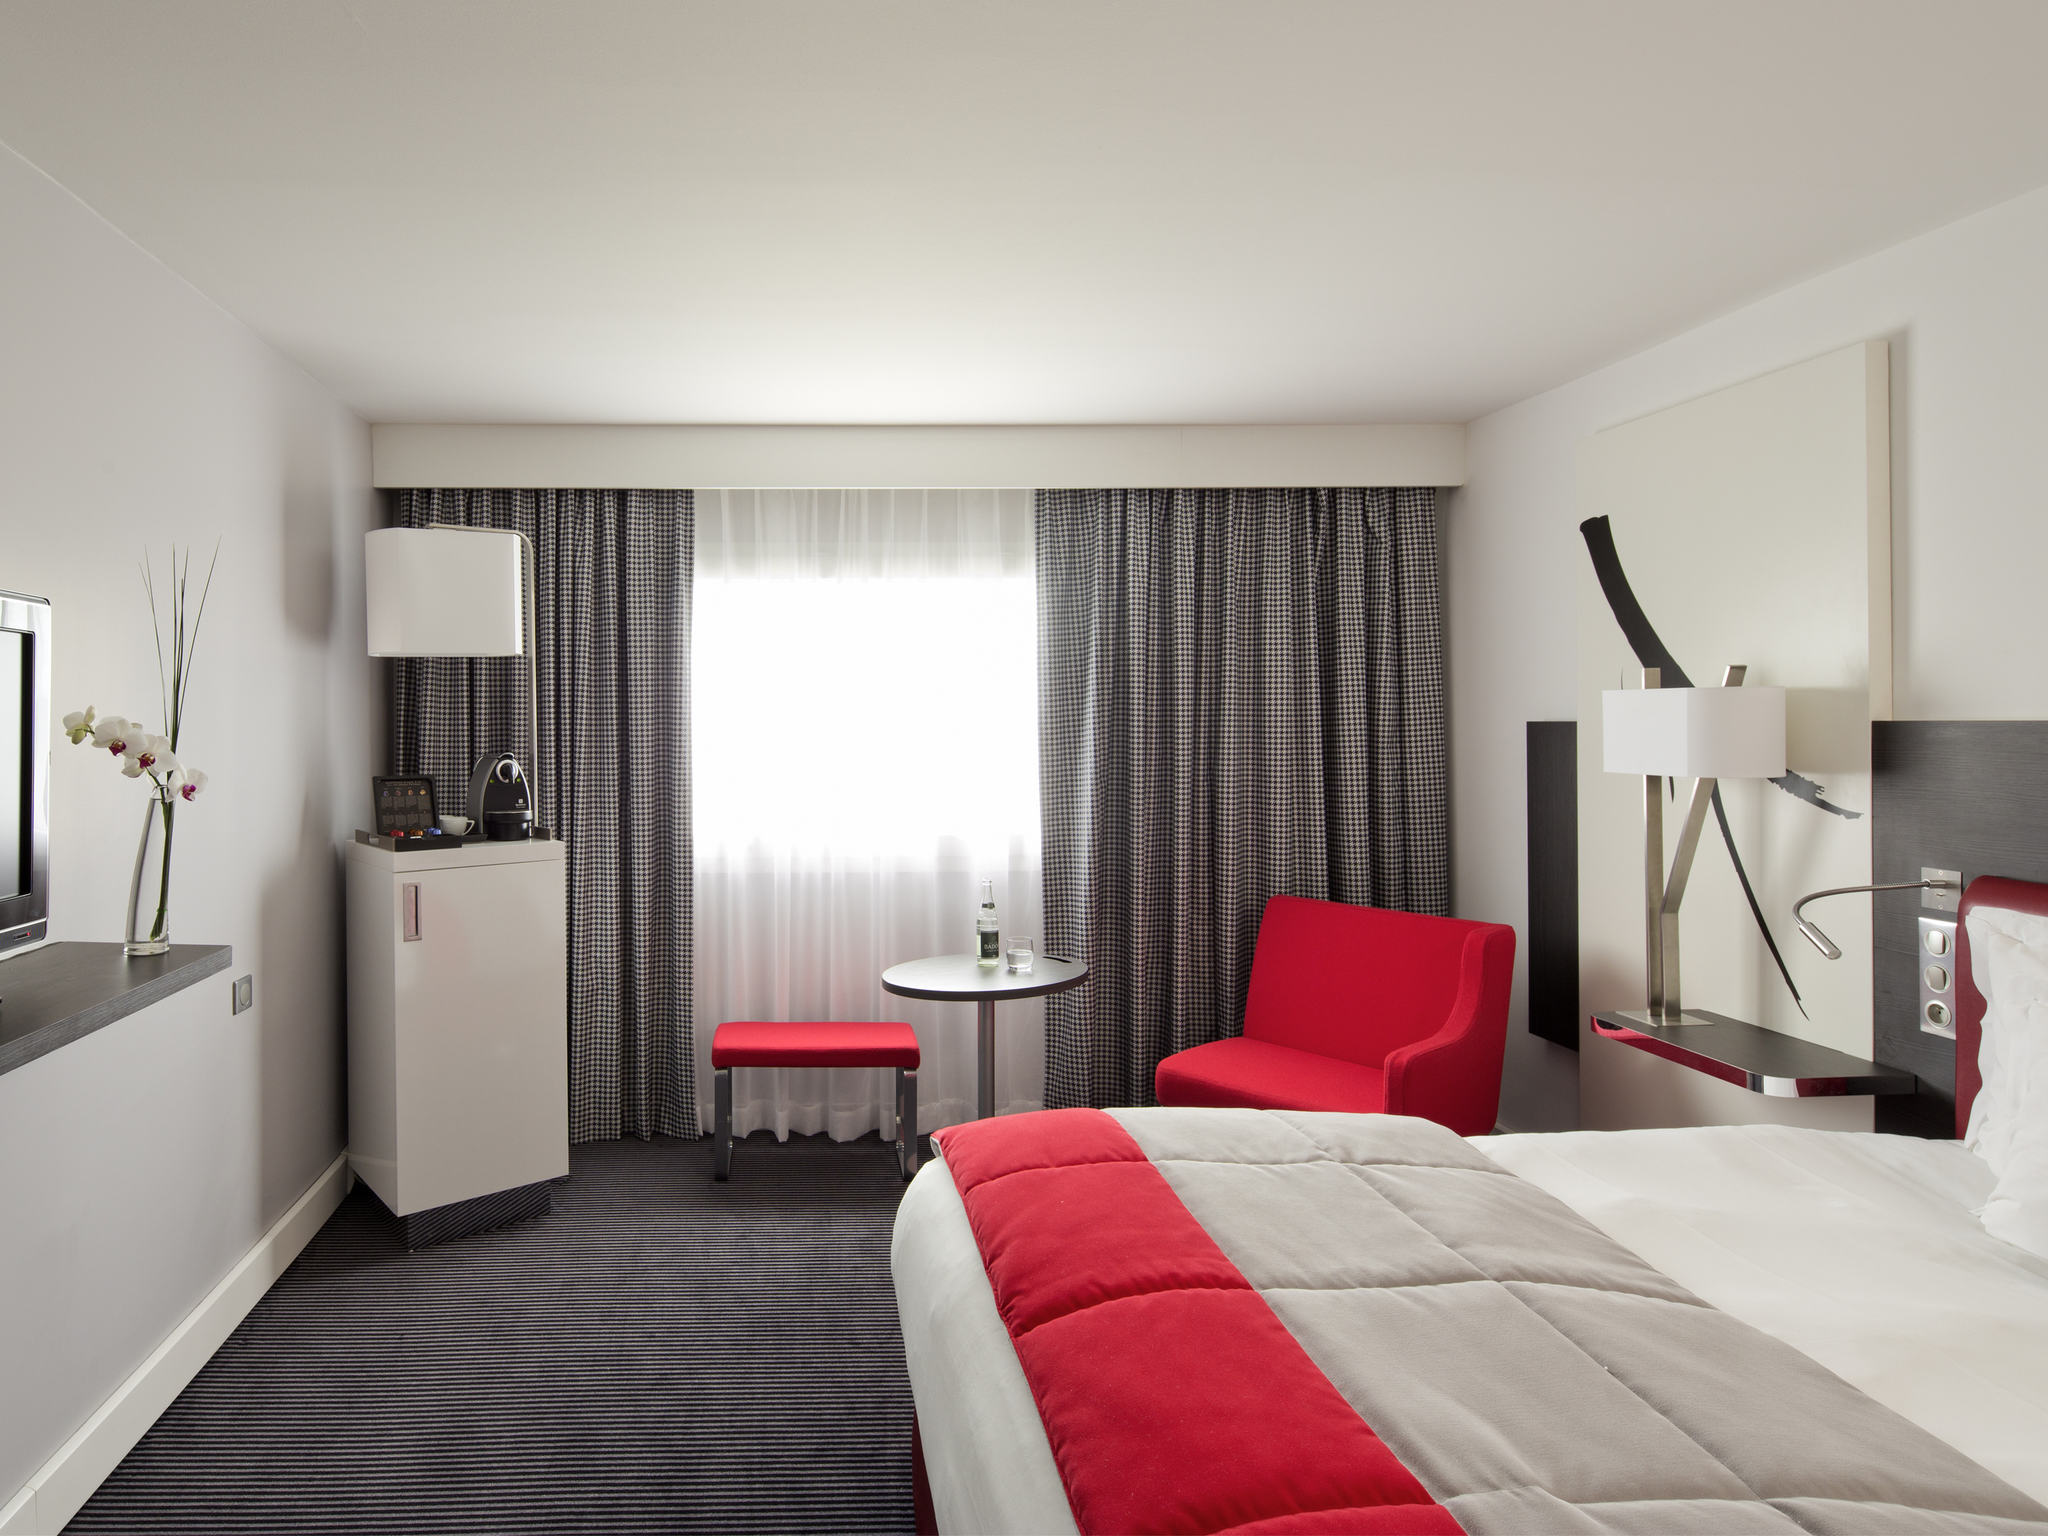 Hotel - Hotel Mercure Paris CDG Airport & Convention